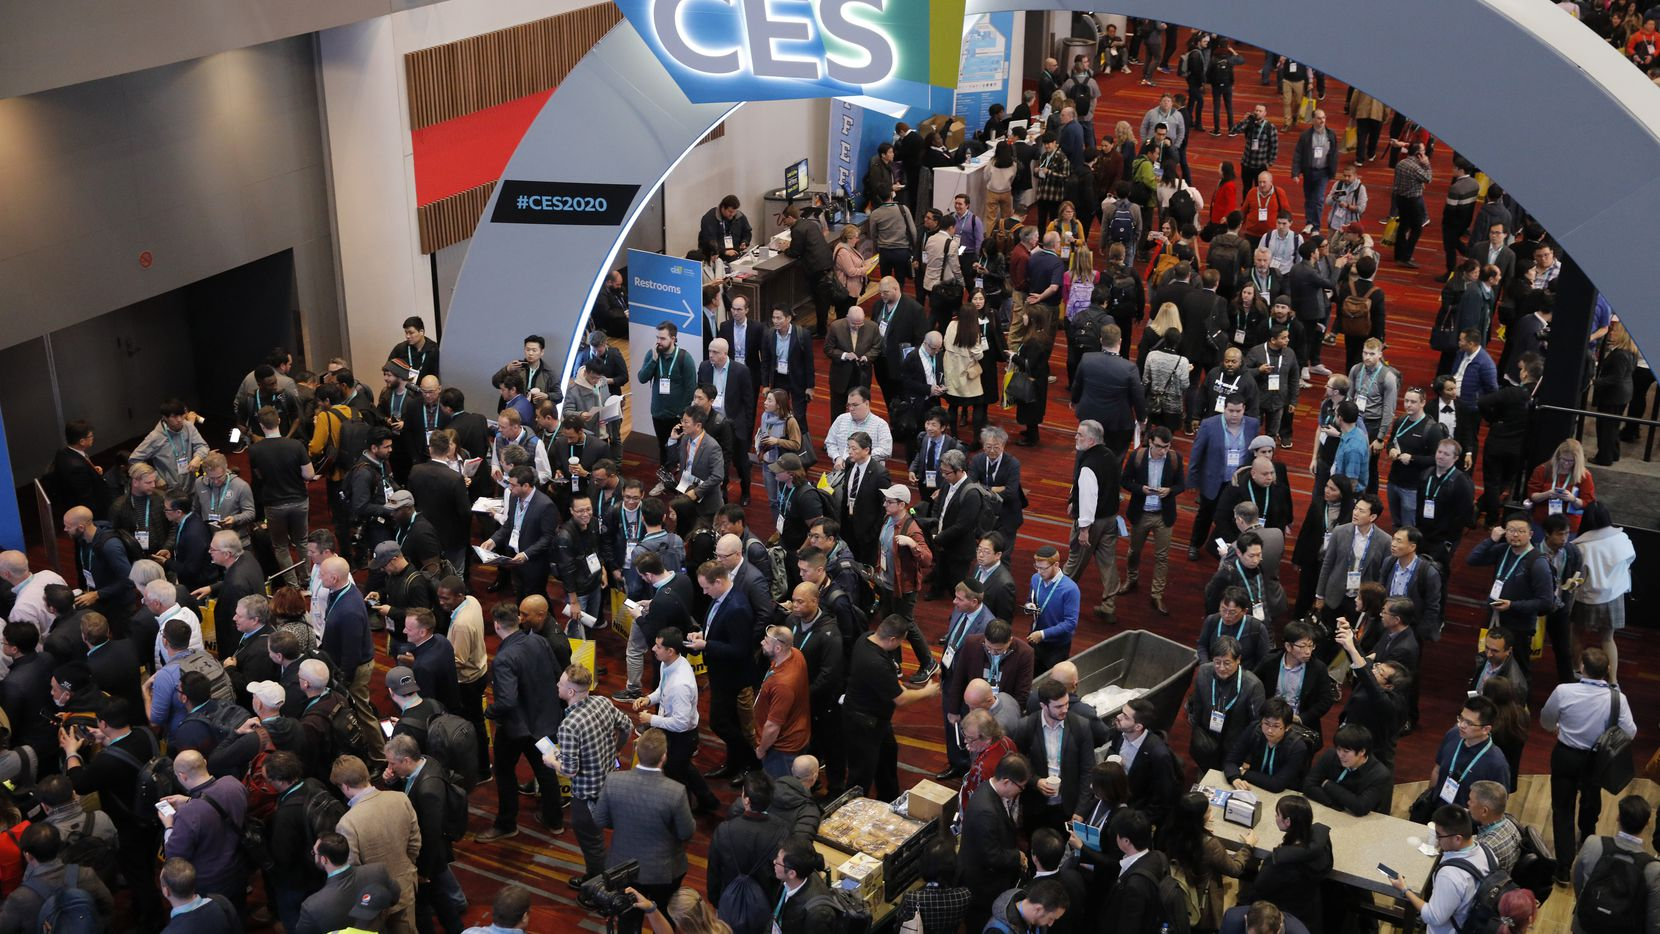 Crowds enter the convention center at the CES tech show in Las Vegas. (AP Photo/John Locher)